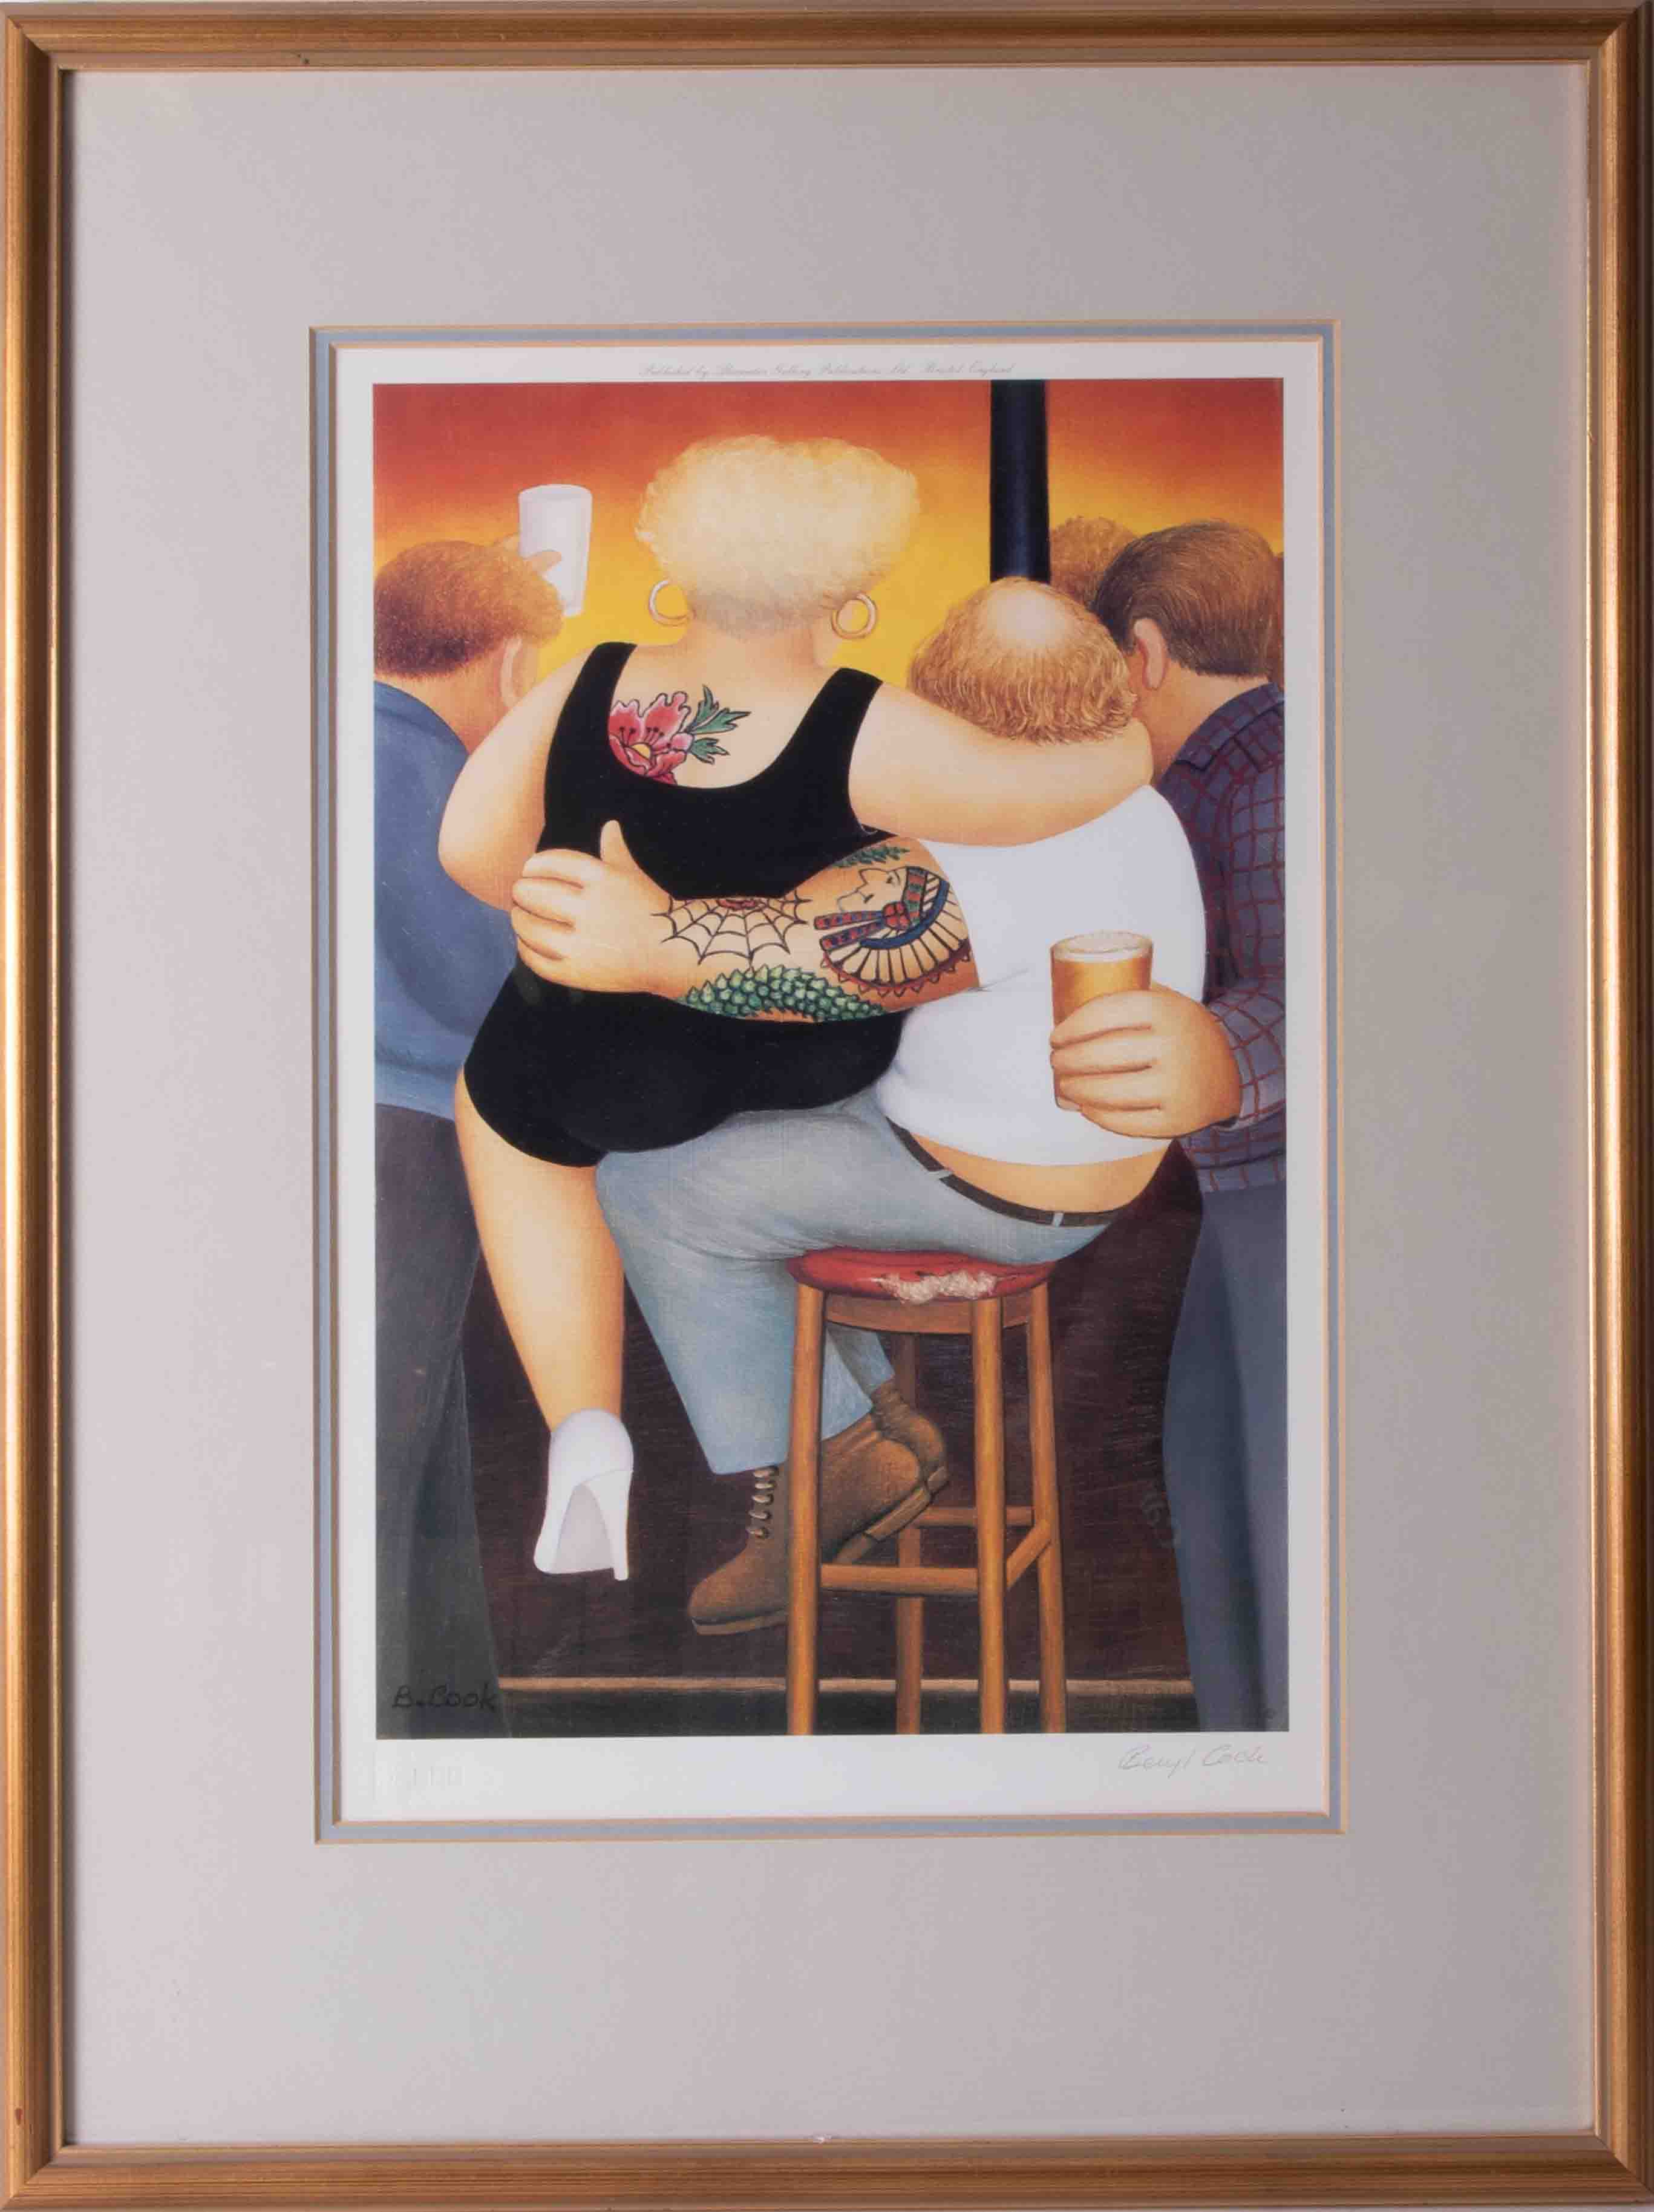 Beryl Cook (1926-2008), 'Two On A Stool', limited edition signed print, 27cm x 40cm, framed and